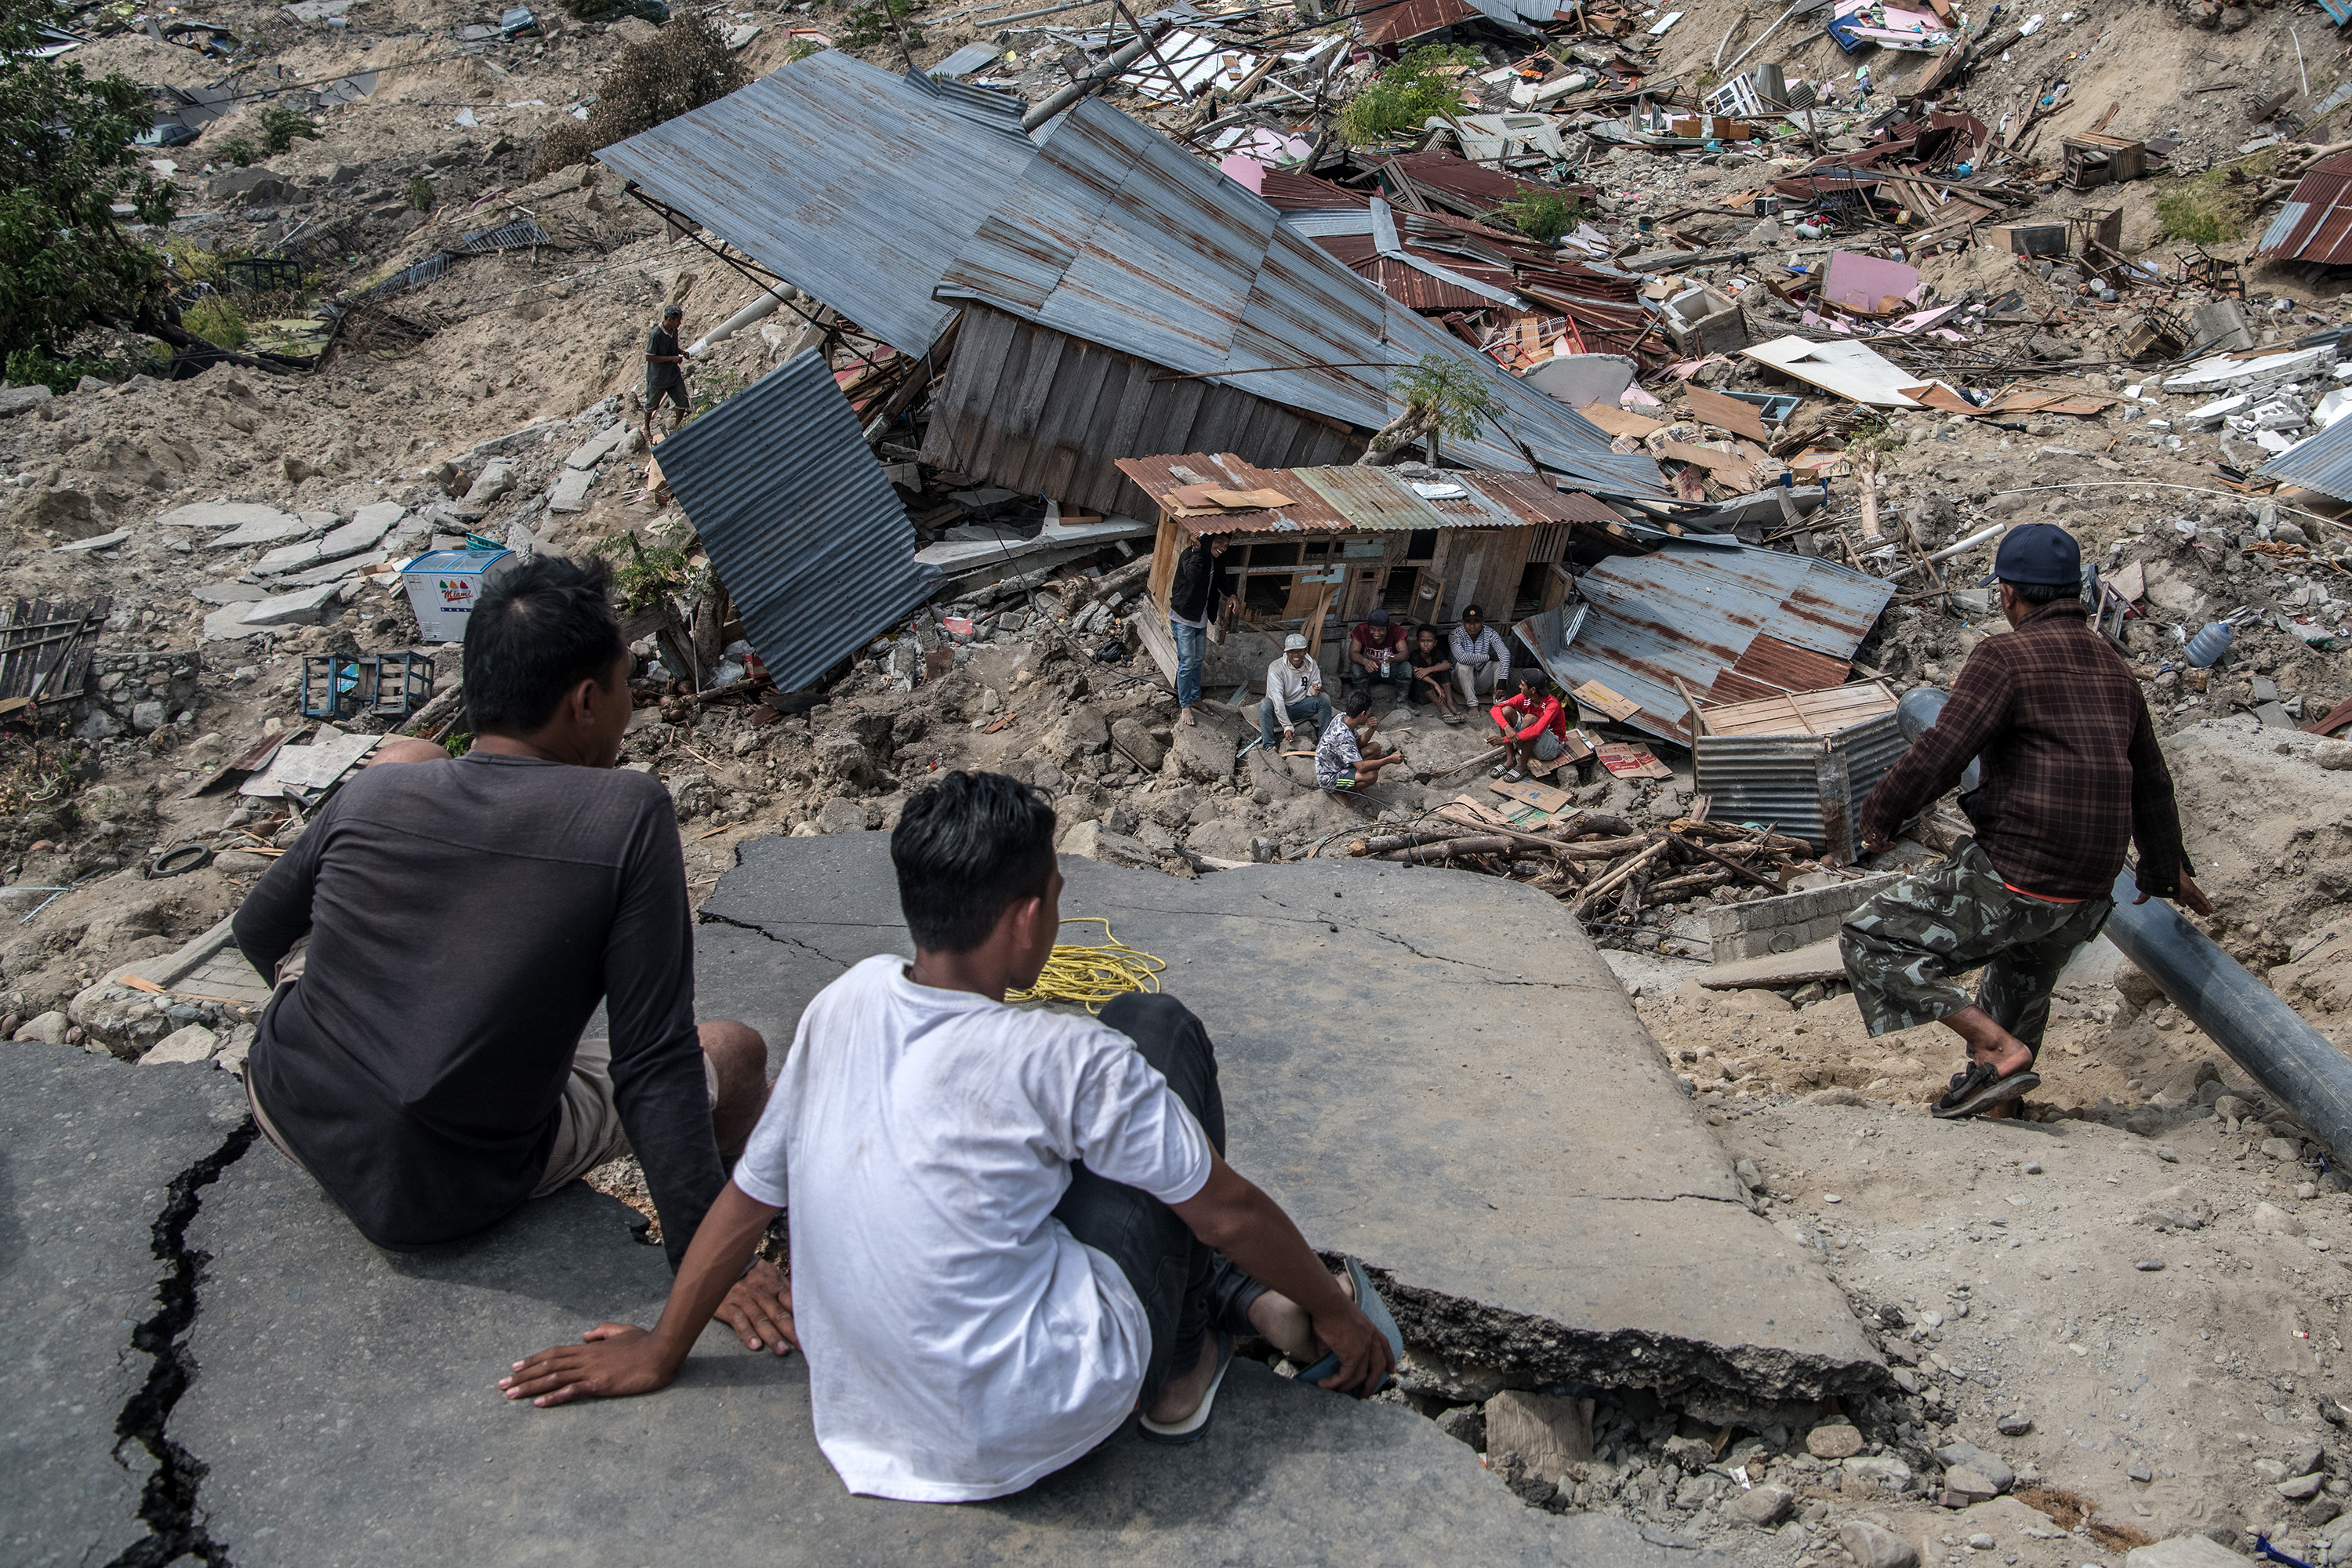 People look down from the edge of ruined road to a group of men resting in the shade of shack in the remains of an area that was completely destroyed by an earthquake, on Oct. 4, 2018 in Palu, Indonesia